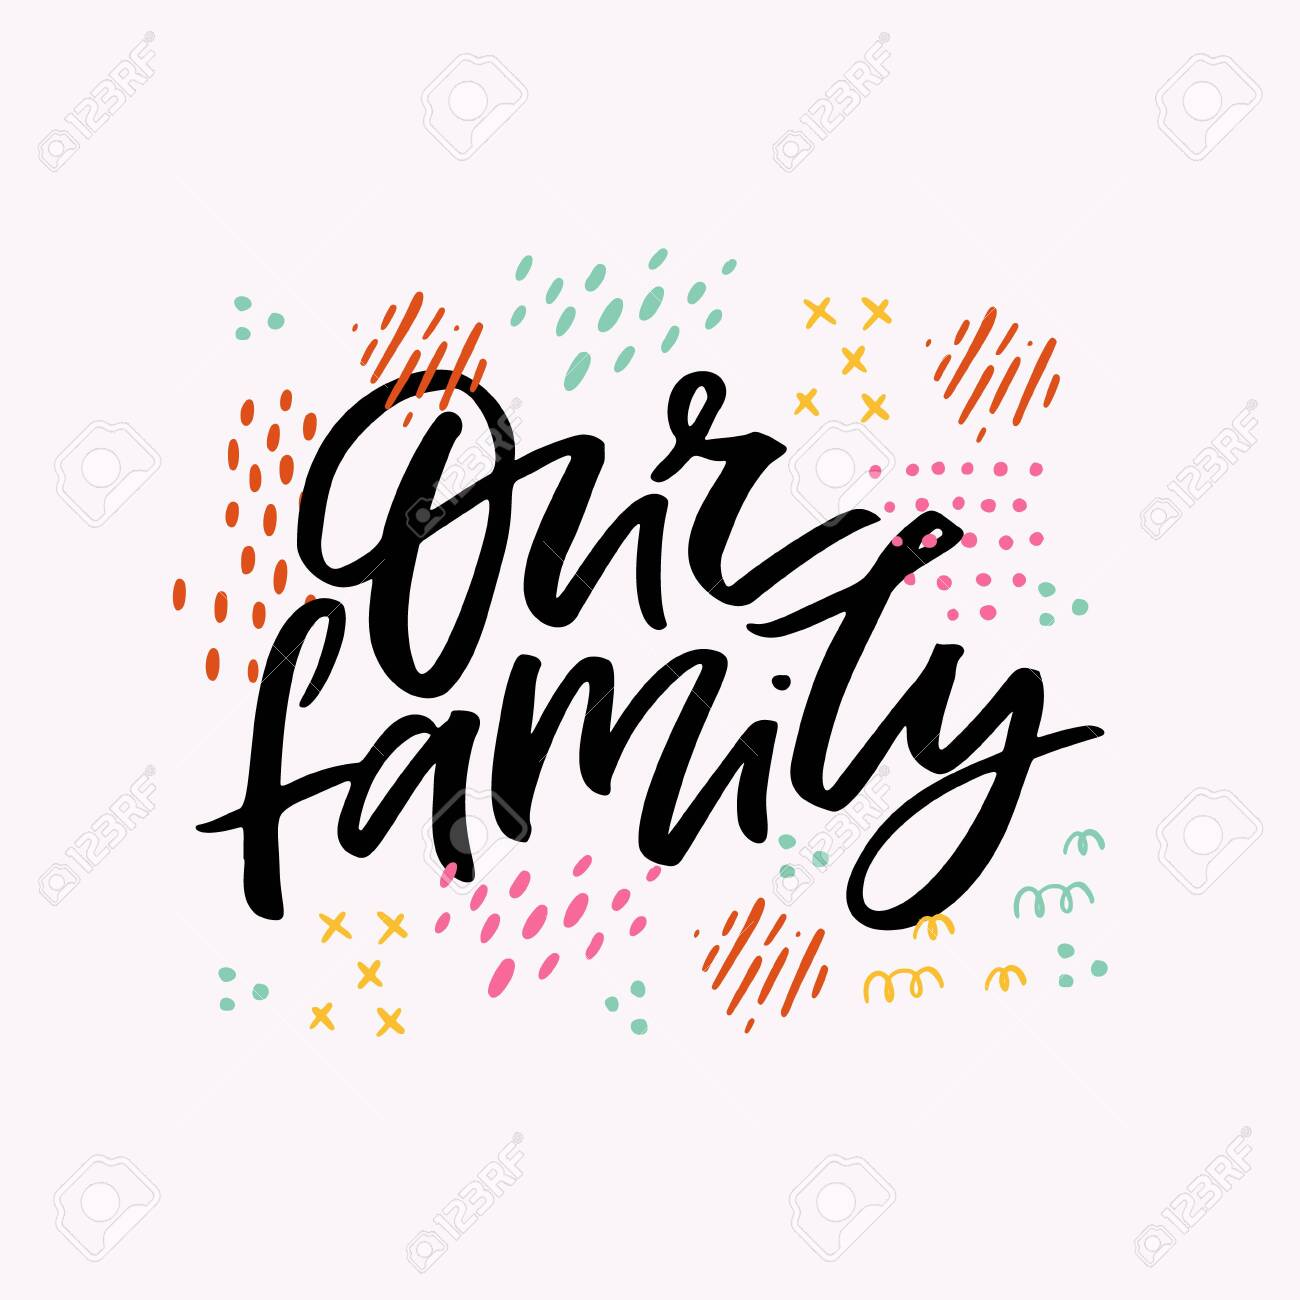 Our family handwritten black ink inscription interesting quote ink - 131756583